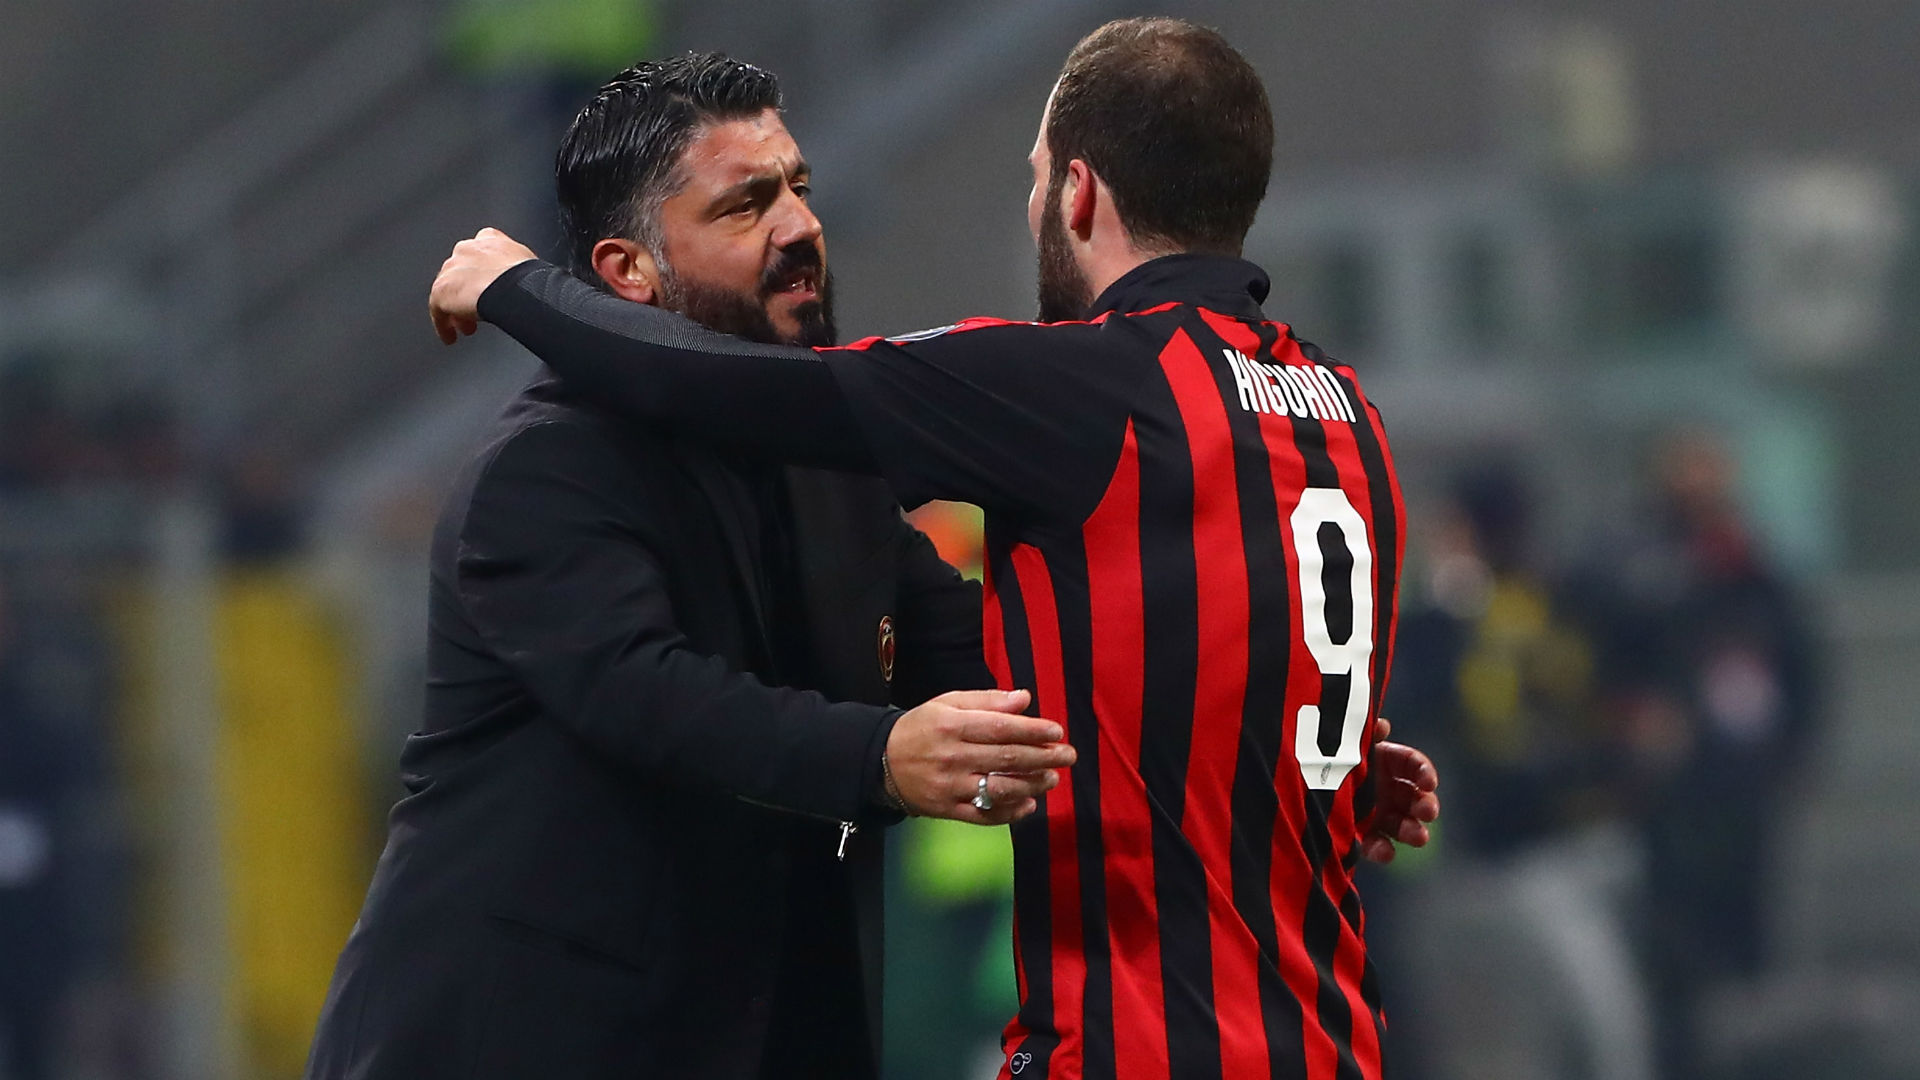 It's difficult to convince him – Gattuso suggests Higuain wants Chelsea move